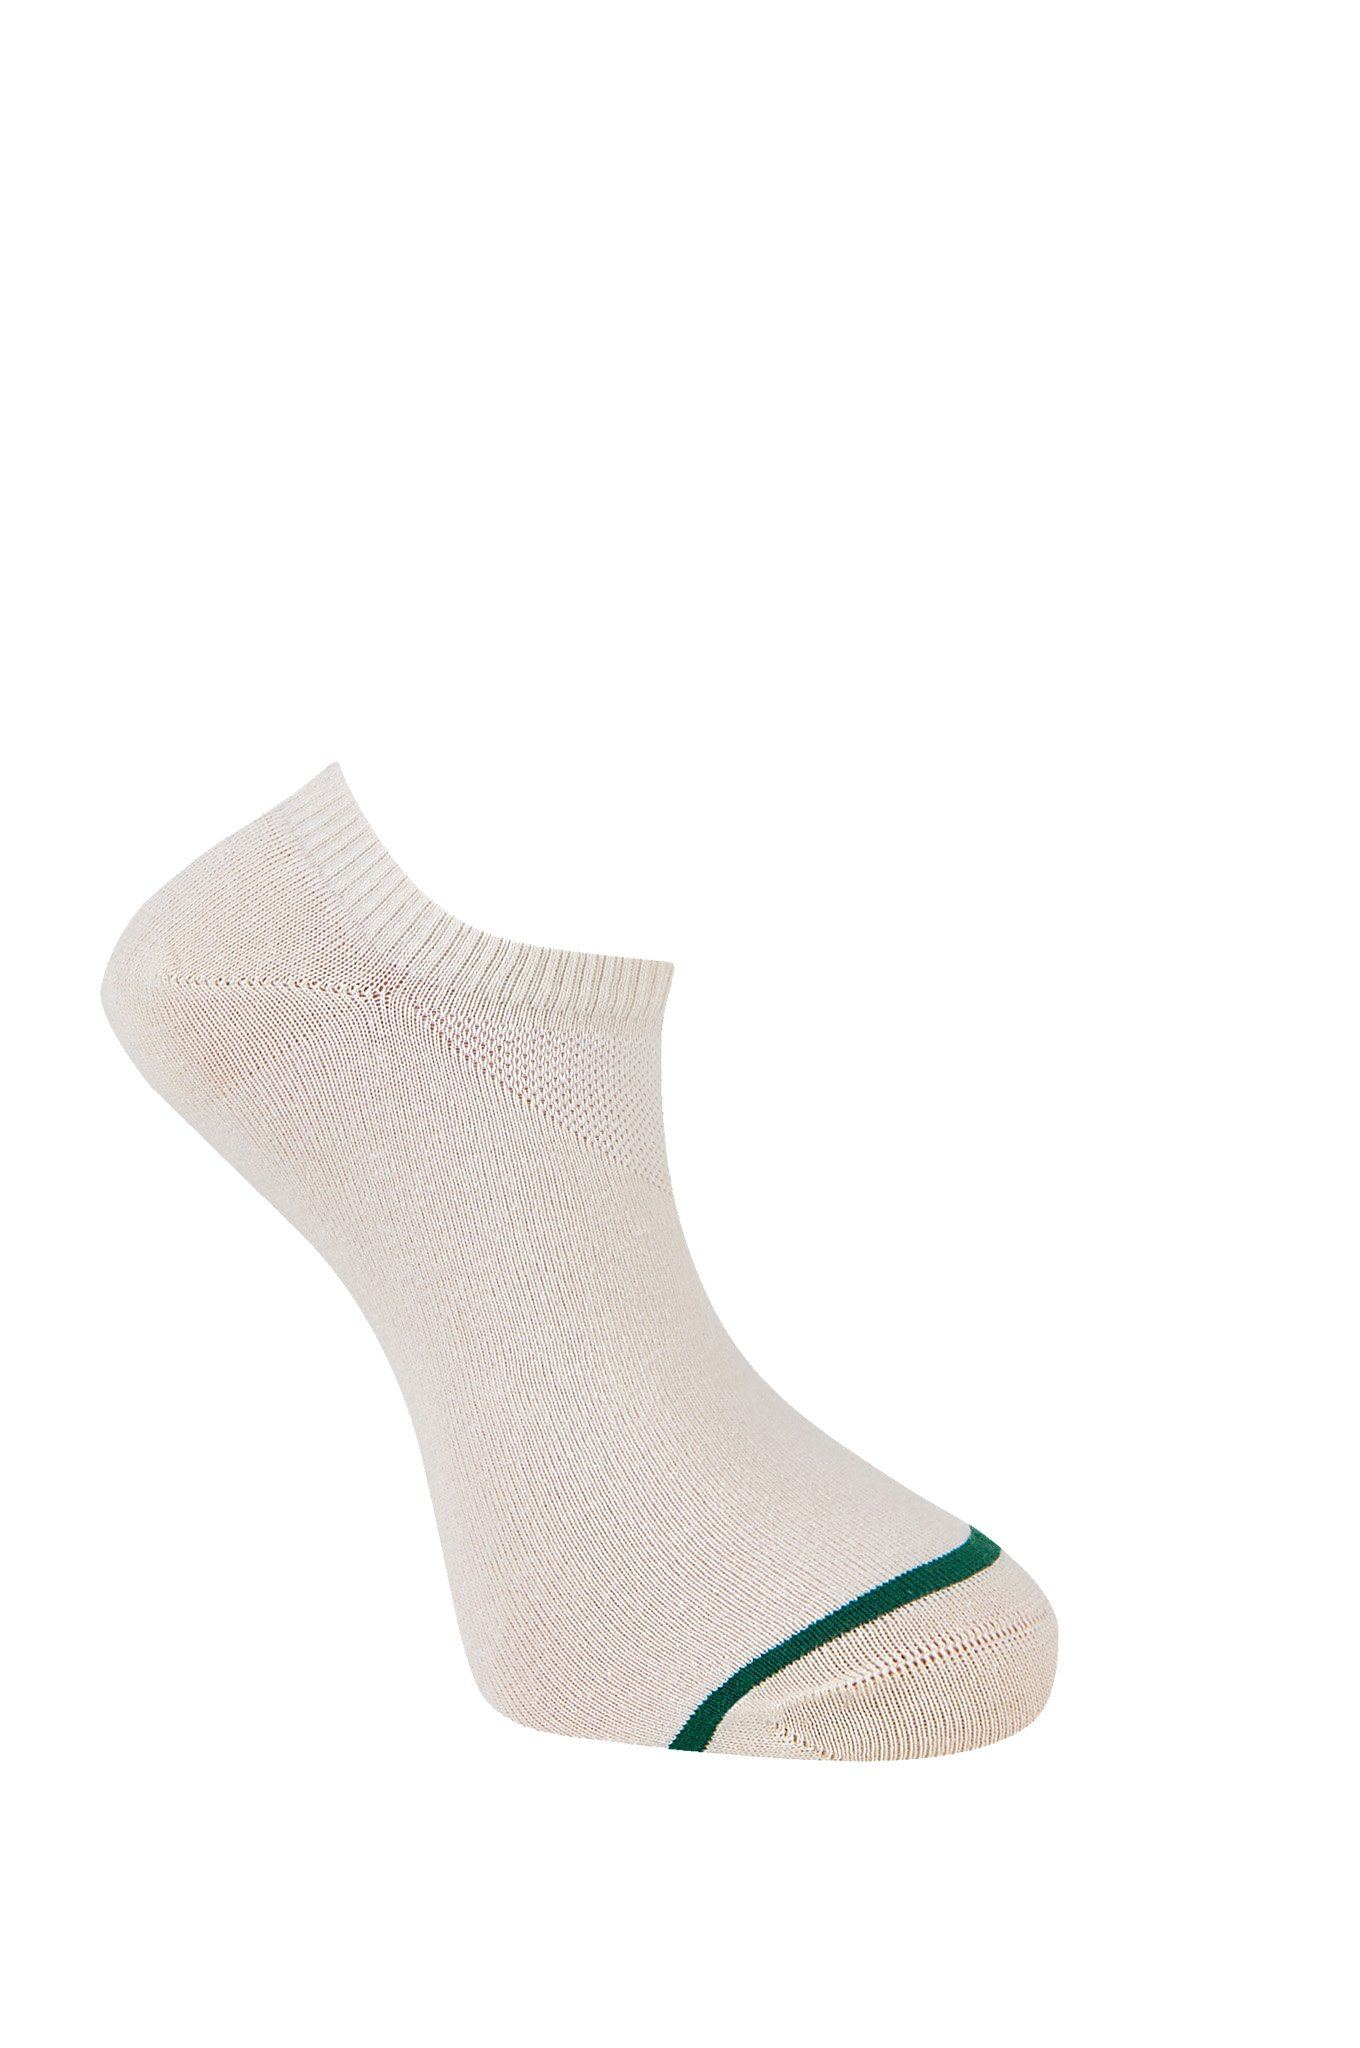 SUN Warm Sand Organic Cotton Trainer Socks - Komodo Fashion